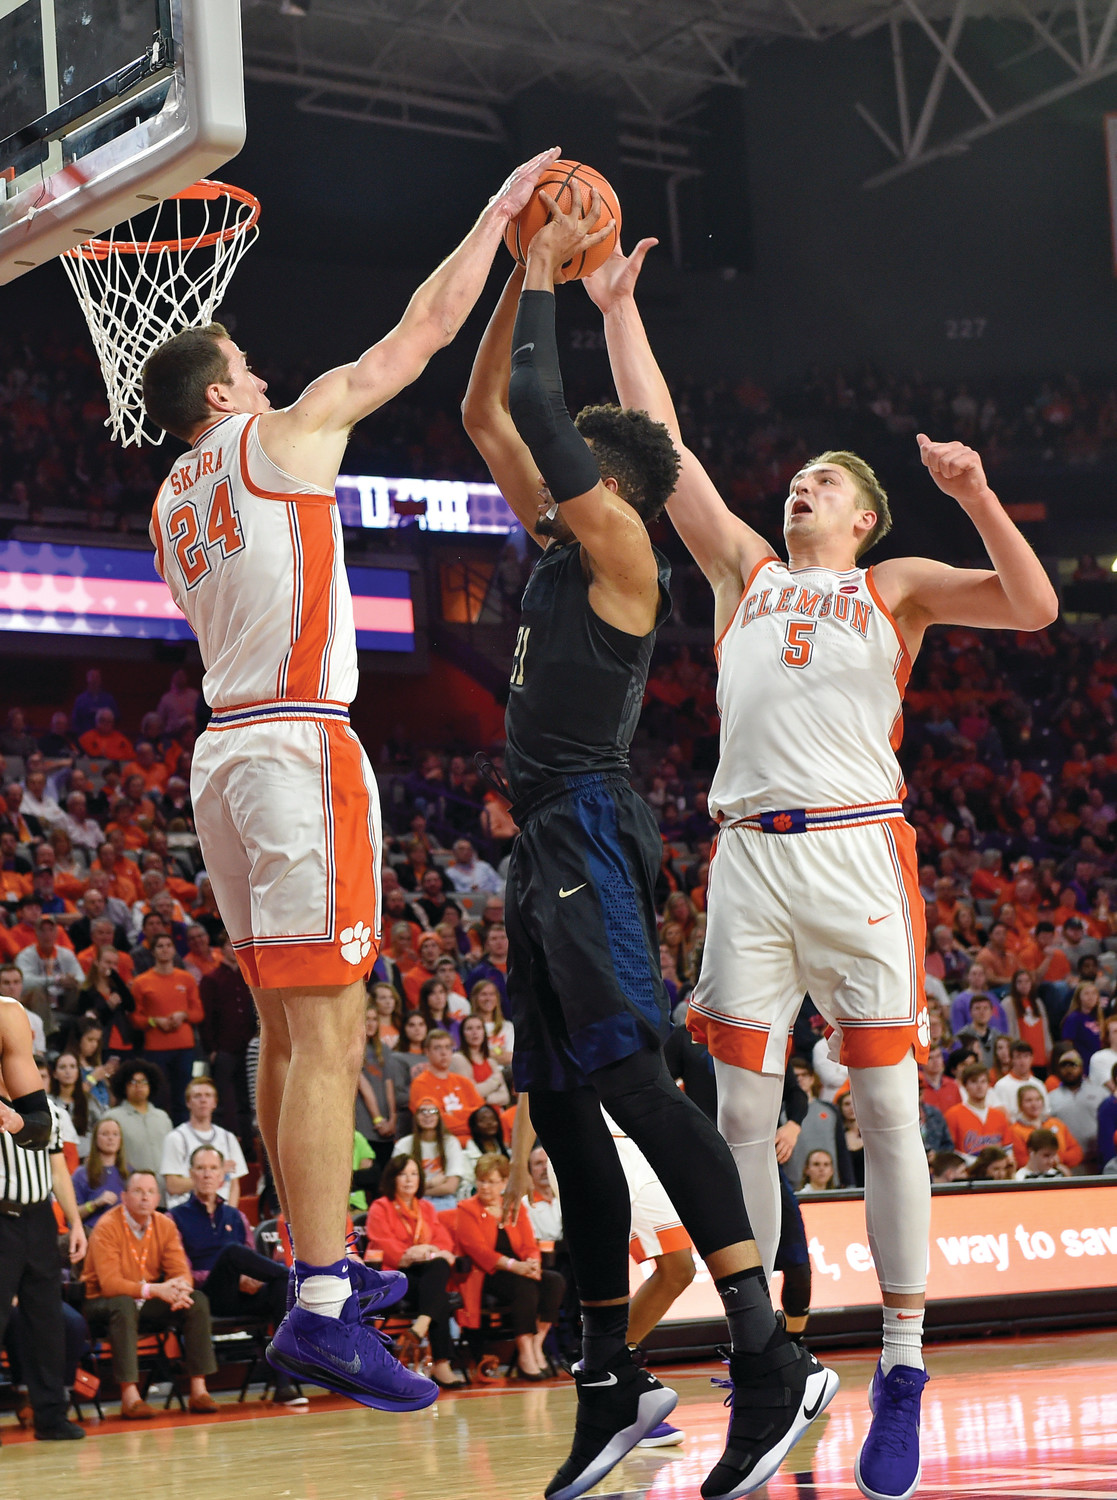 Clemson's David Skara (24) and Mark Donnal (5) both block the shot of Pittsburgh's Terrell Brown during the Tigers' 72-48 victory on Thursday in Clemson. The Tigers moved up to No. 11 in The Associated Press Top 25 poll released on Monday.